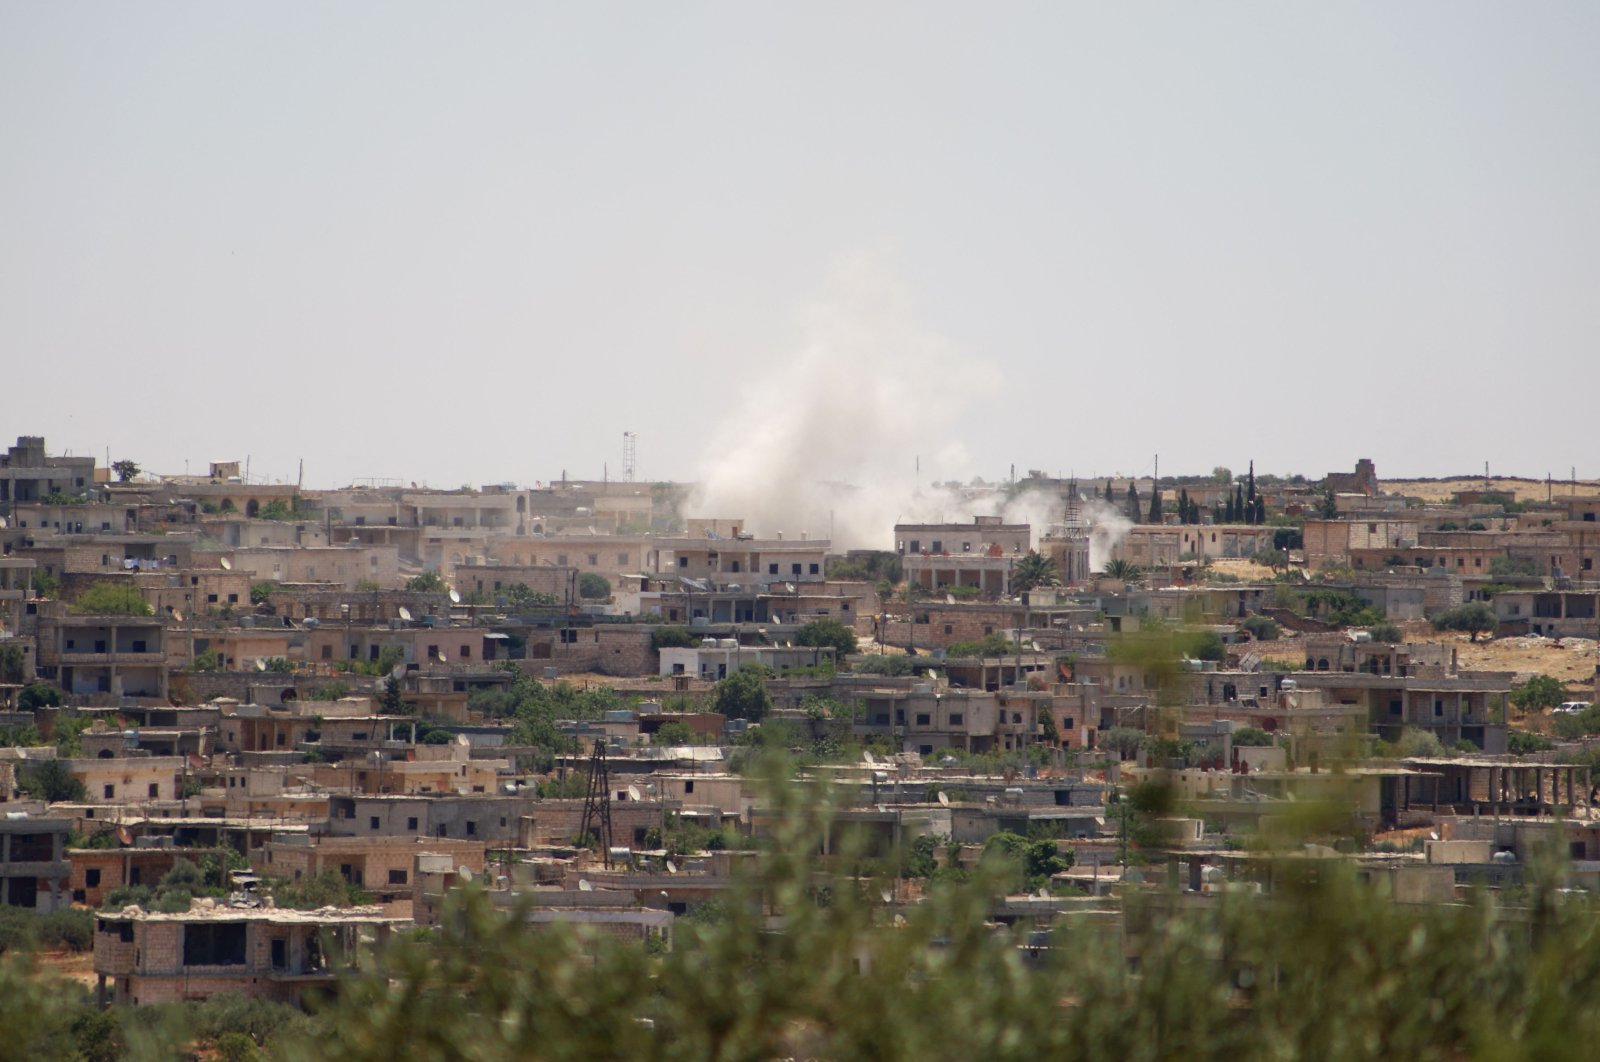 Smoke billows following reported bombardment by government forces in the town of Barah, in the Jabal al-Zawiya region of the opposition-held Idlib province, Syria, June 21, 2021. (AFP Photo)